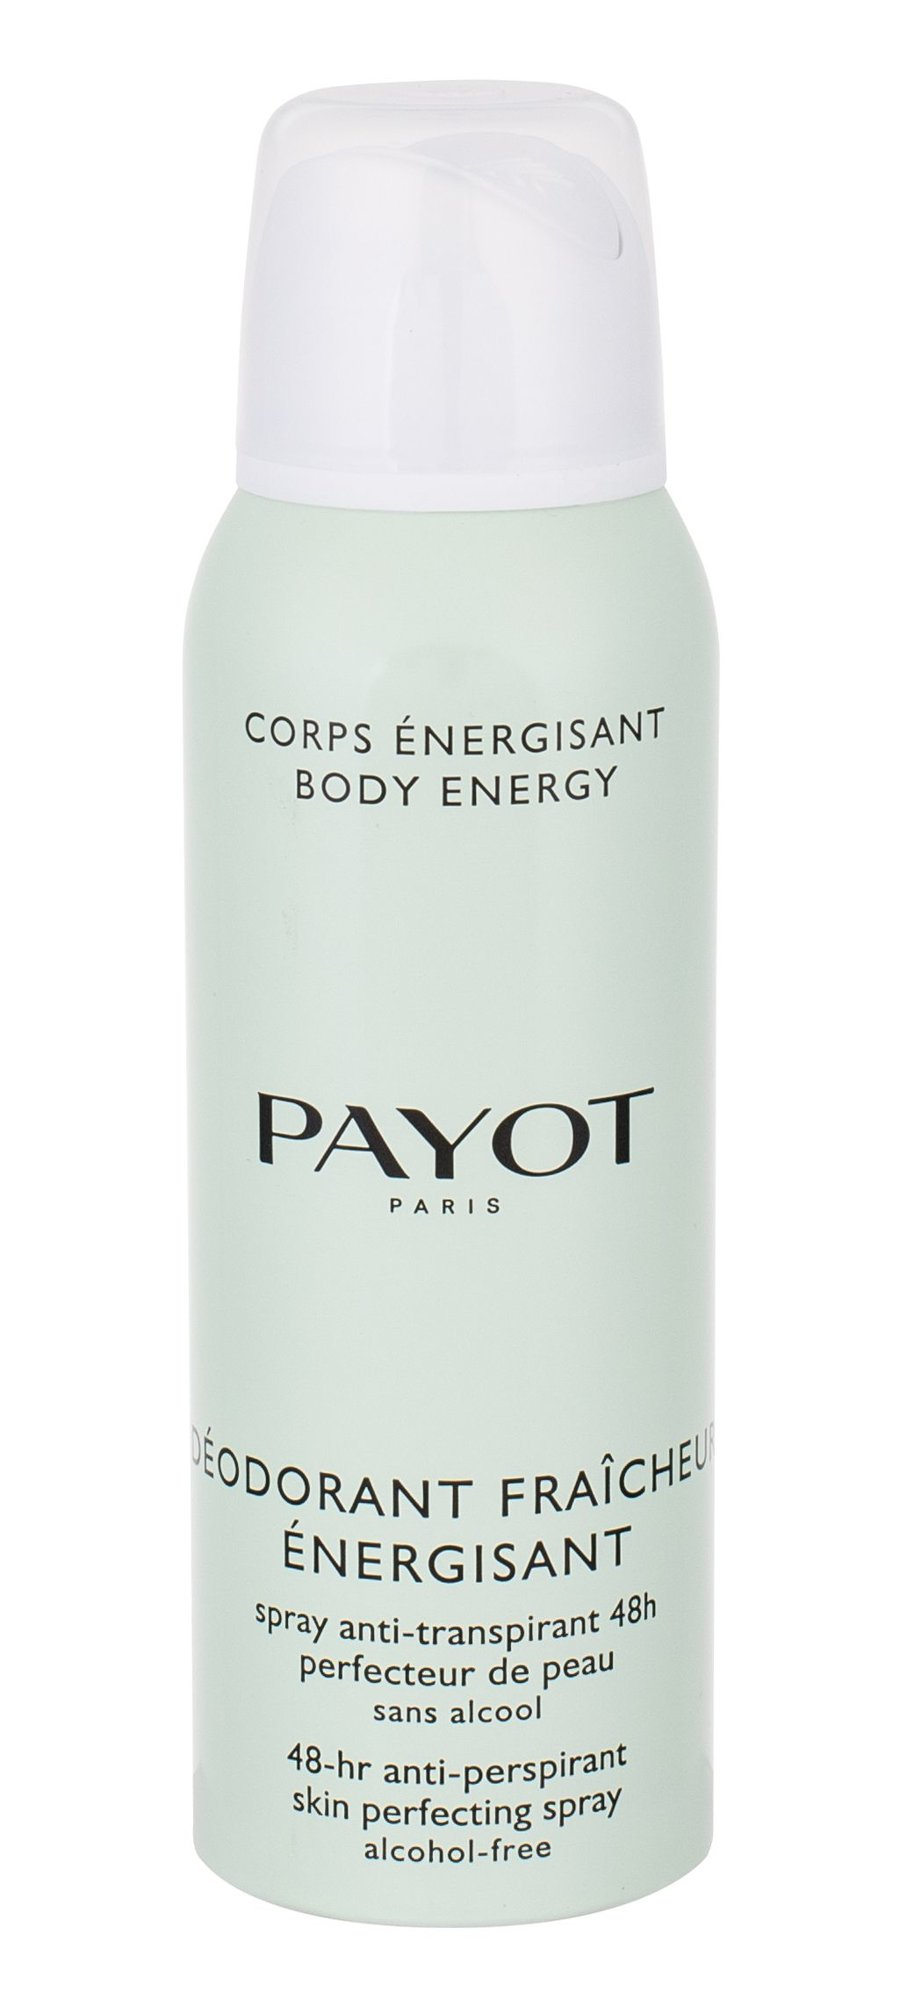 PAYOT Corps Energisant Cosmetic 125ml